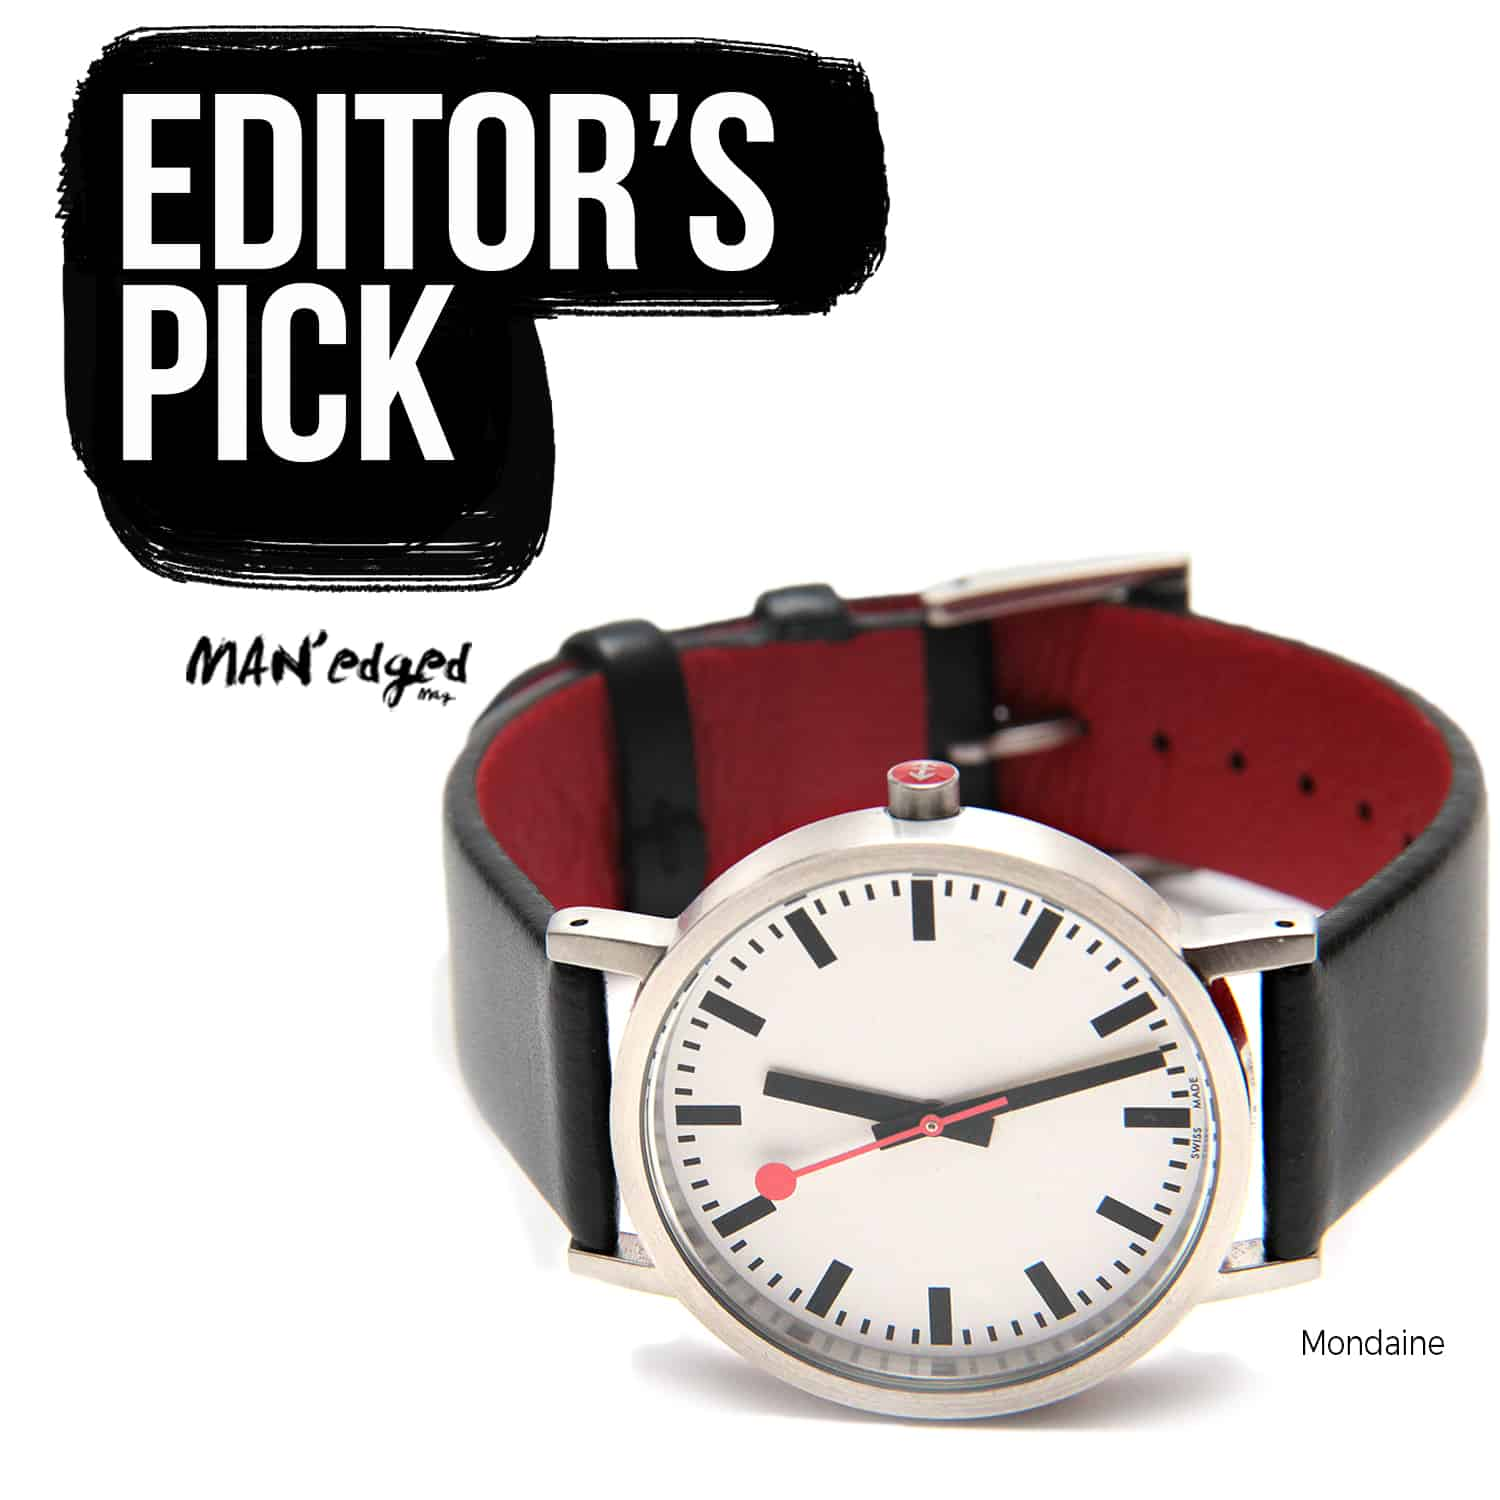 Editor's Pick highlight featuring the men's watch by Mondaine SBB Classic Pure Watch Close Up